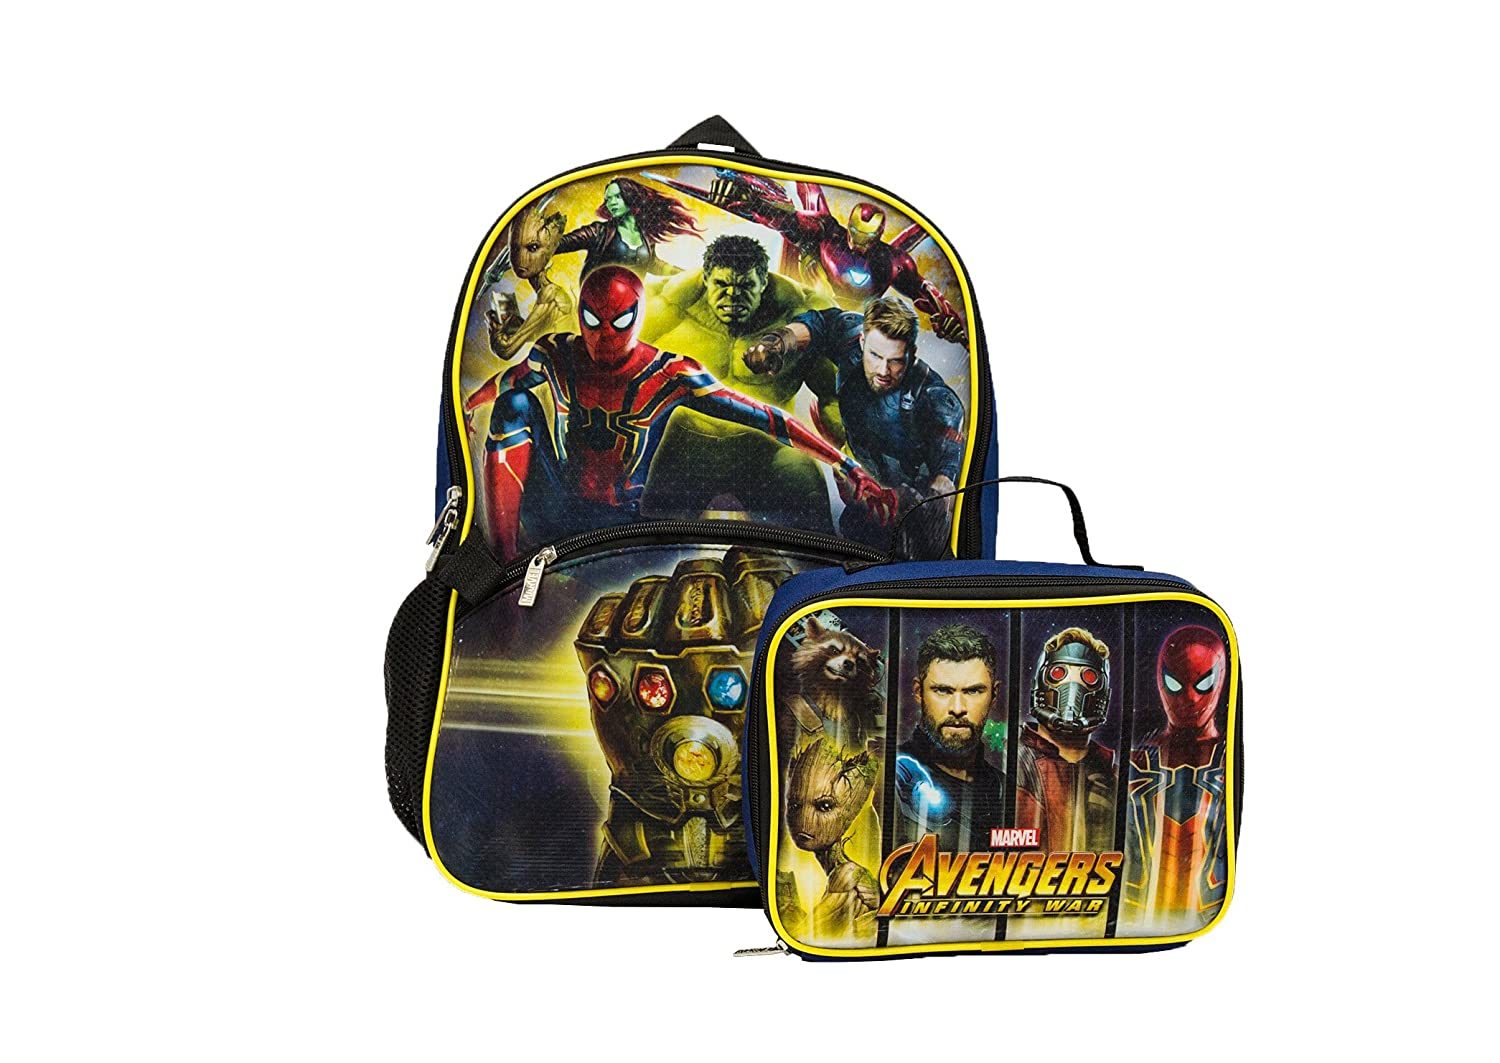 Marvel Avengers Infinity War Backpack With Lunch Kit Backpack